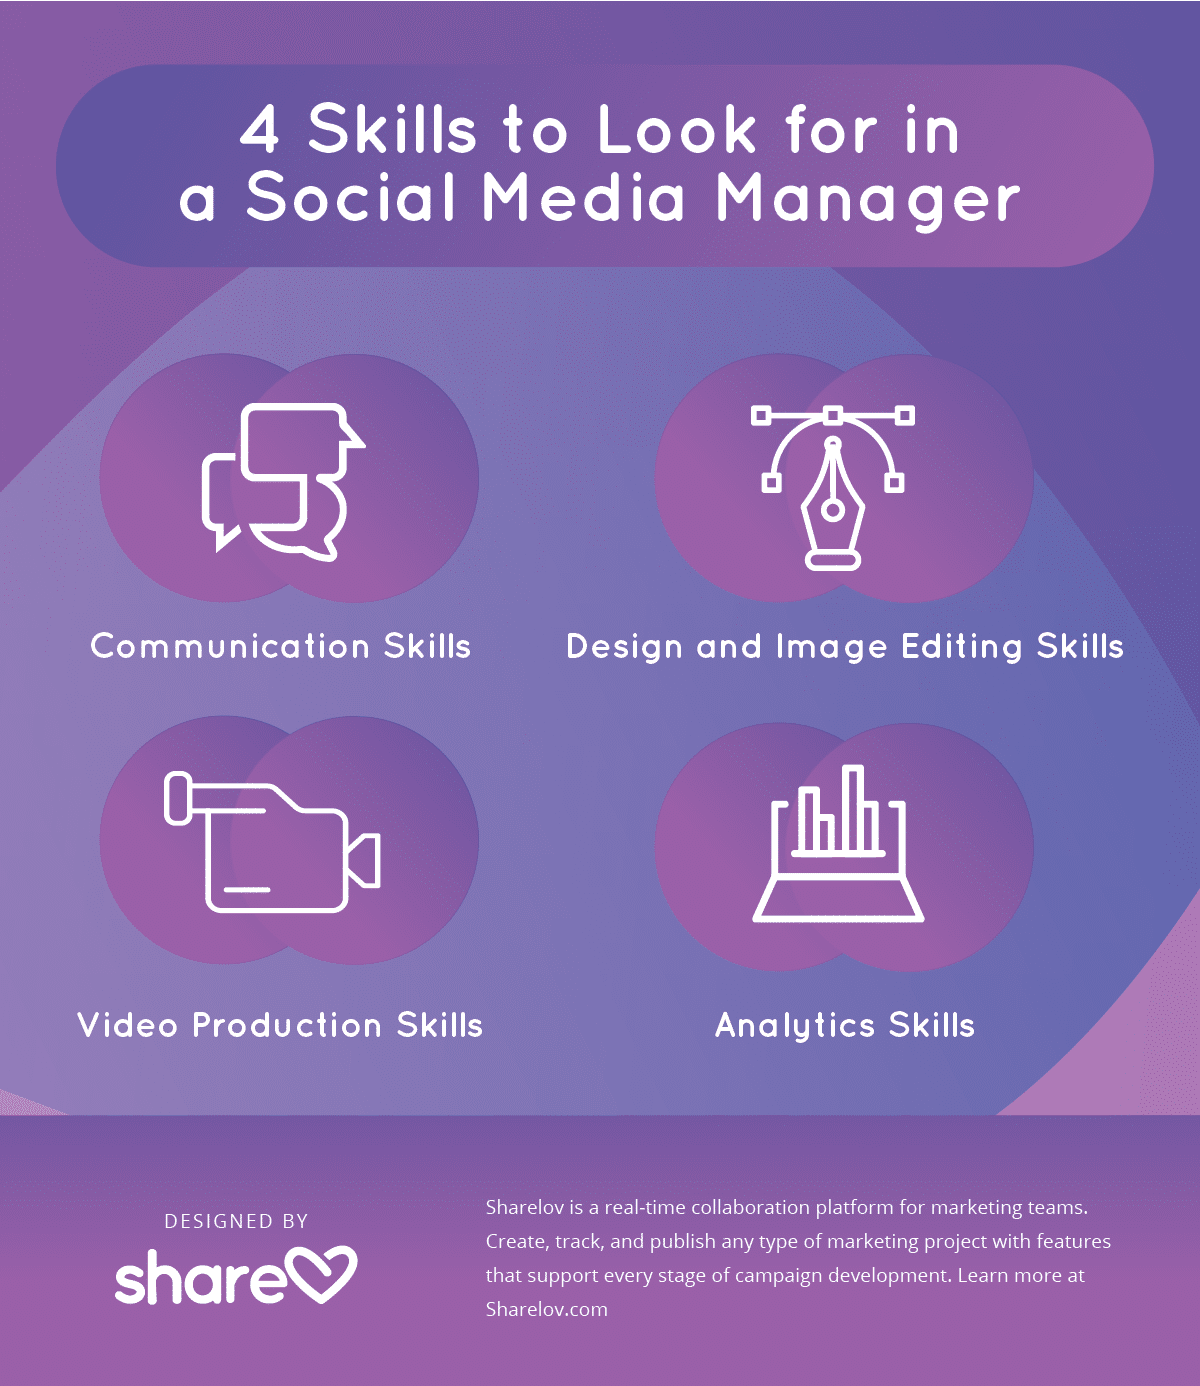 4 Skills to Look for in a Social Media Manager infographic